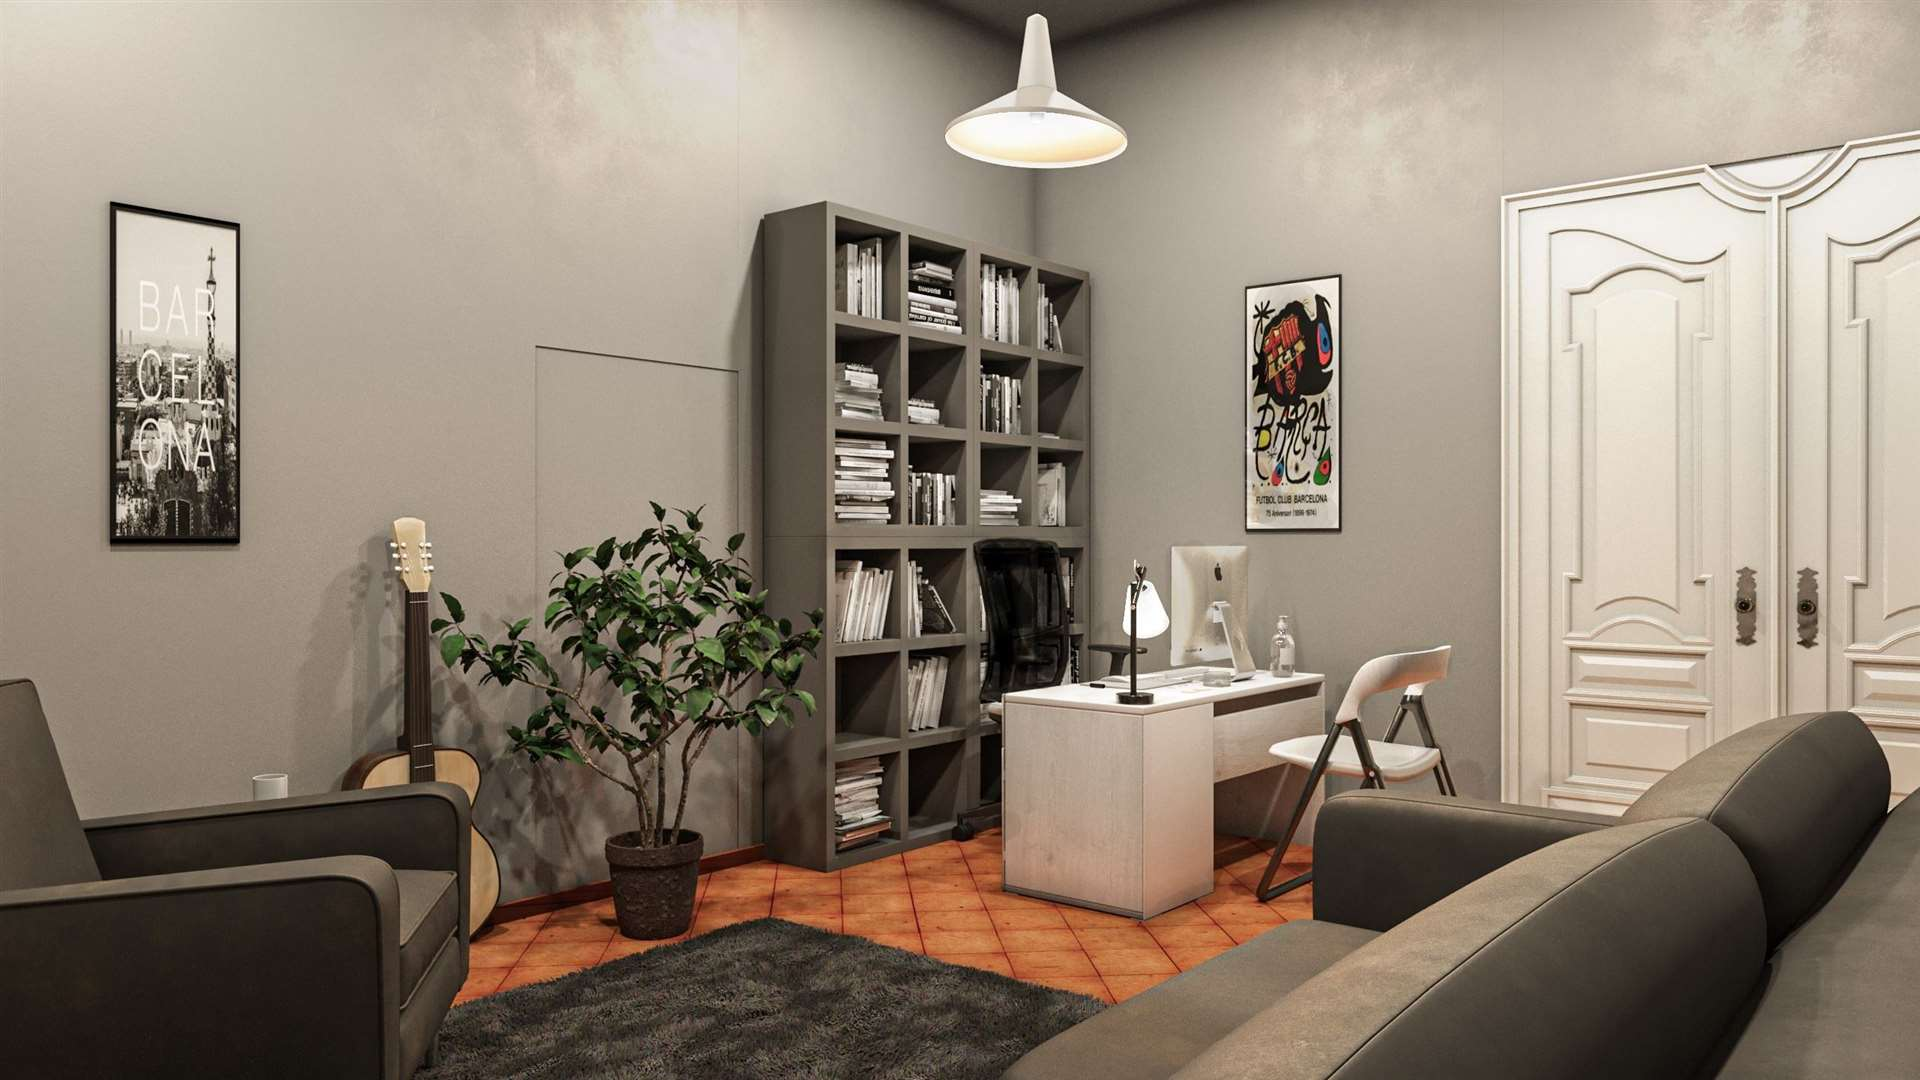 A visual for one of the rooms being created in Barcelona under the Homeless Entrepreneur project